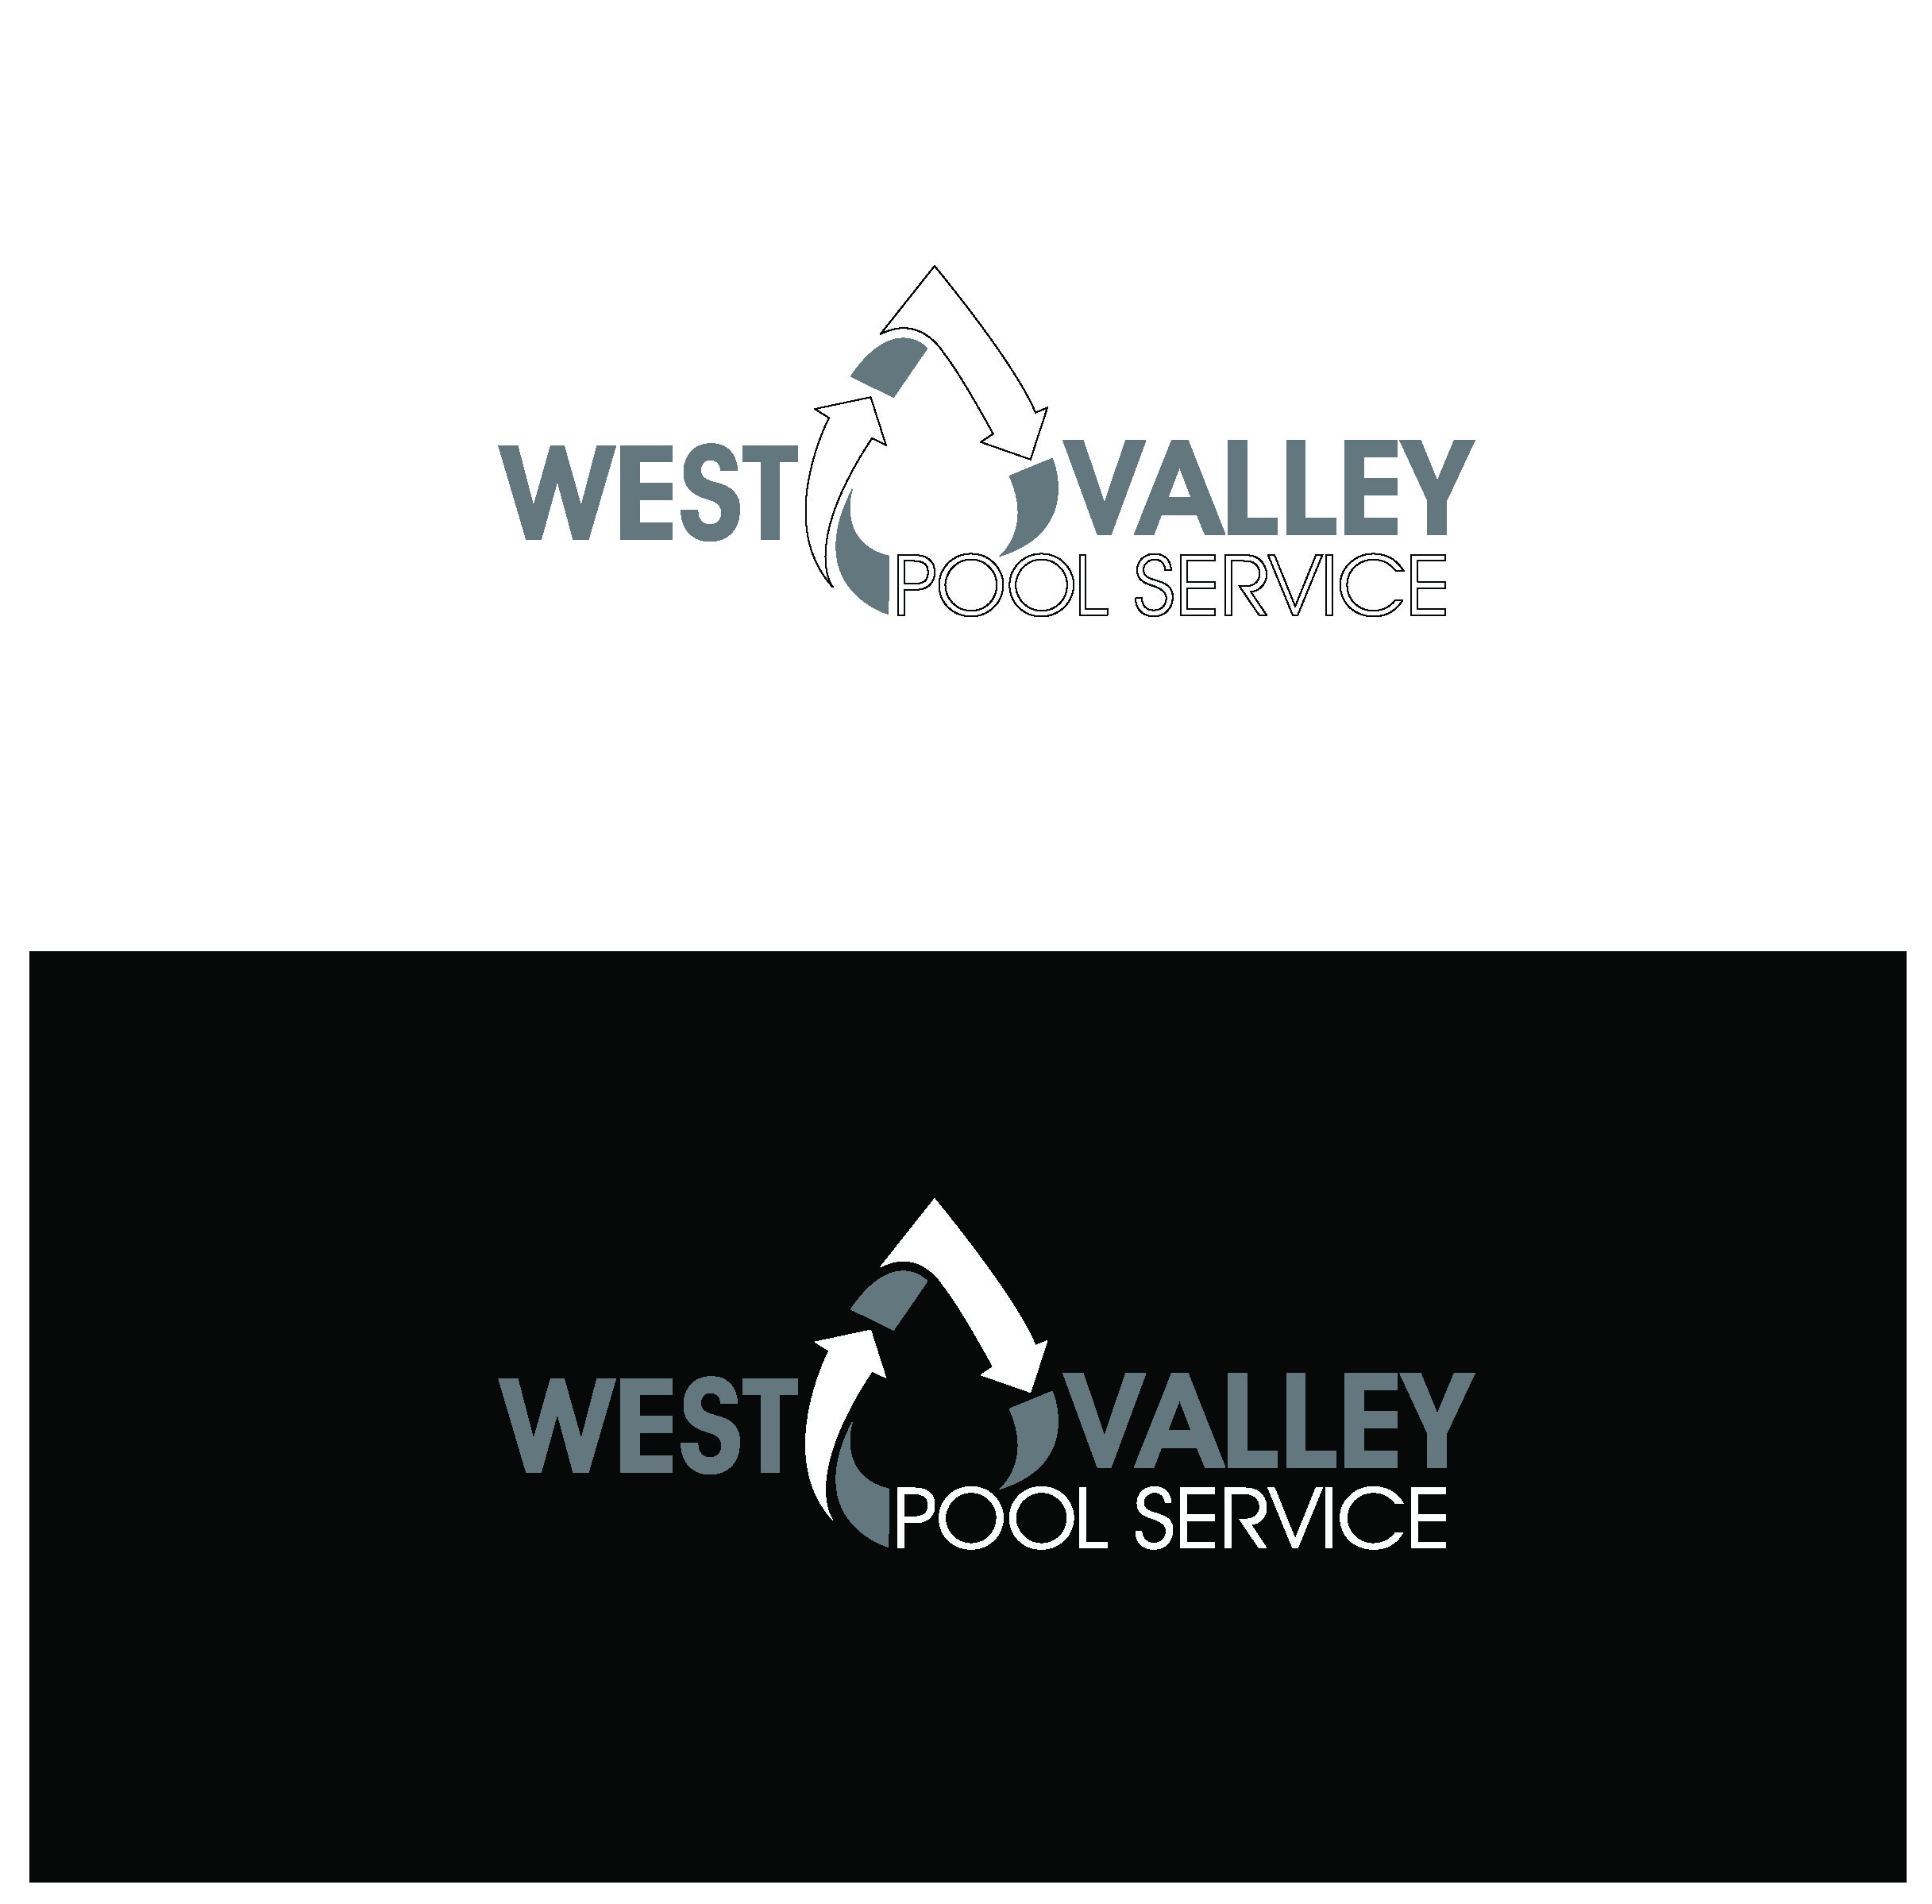 Logo Design by Sampath Gunathilaka - Entry No. 93 in the Logo Design Contest Clever Logo Design for West Valley Pool Service.